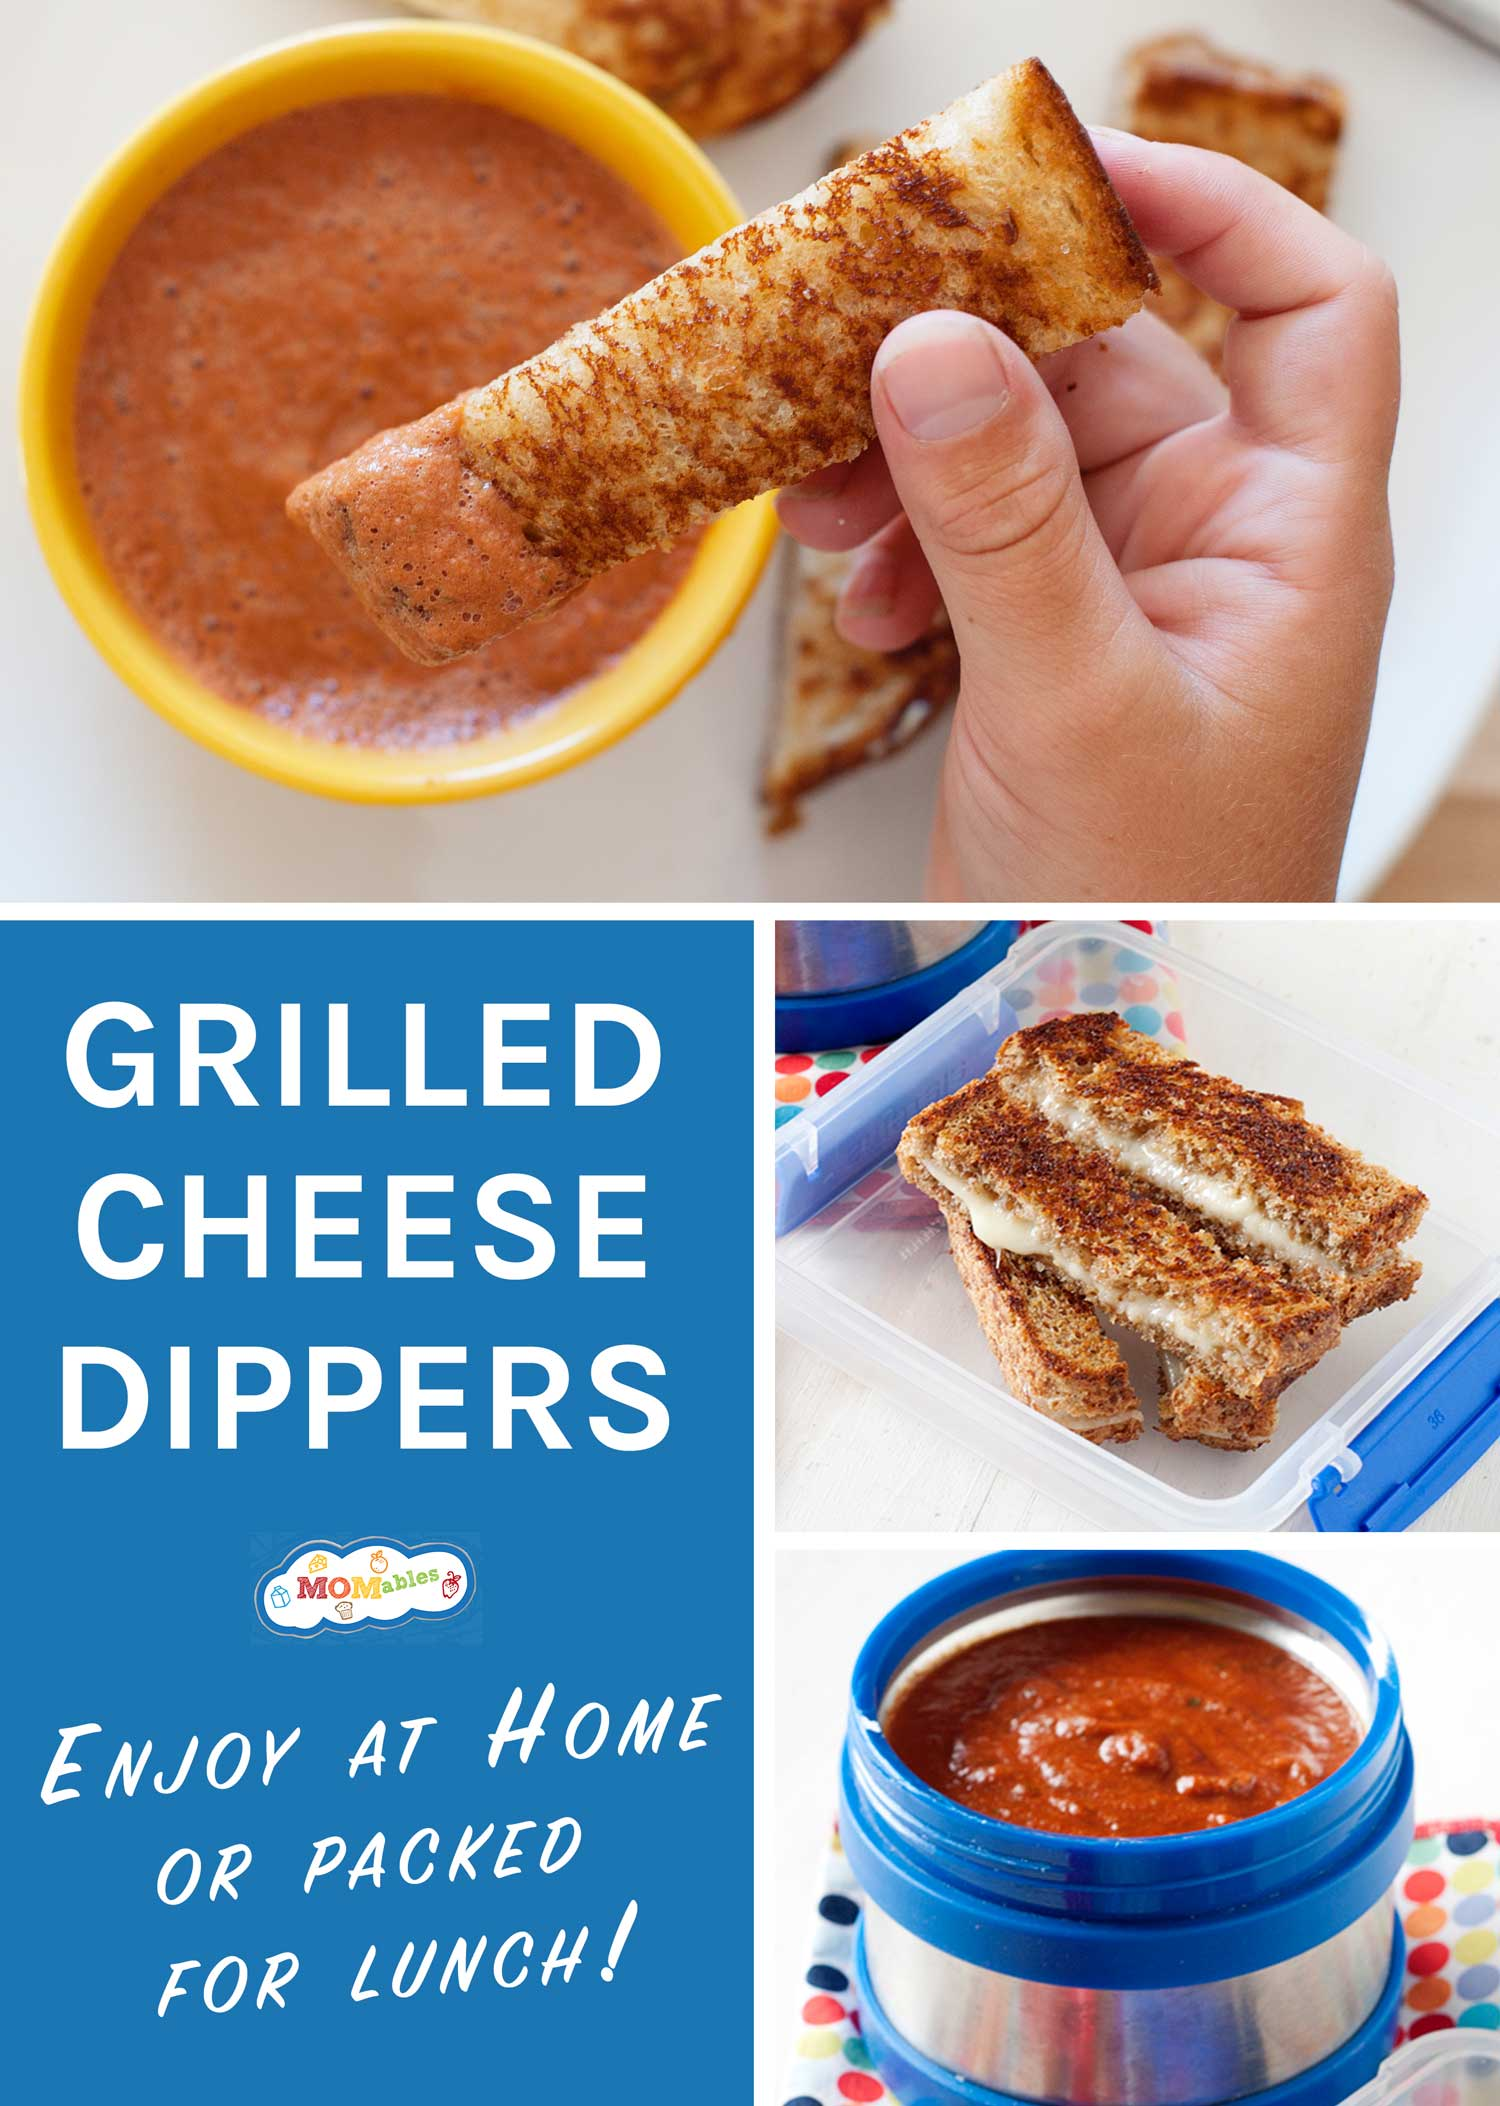 grilled cheese dippers image collage